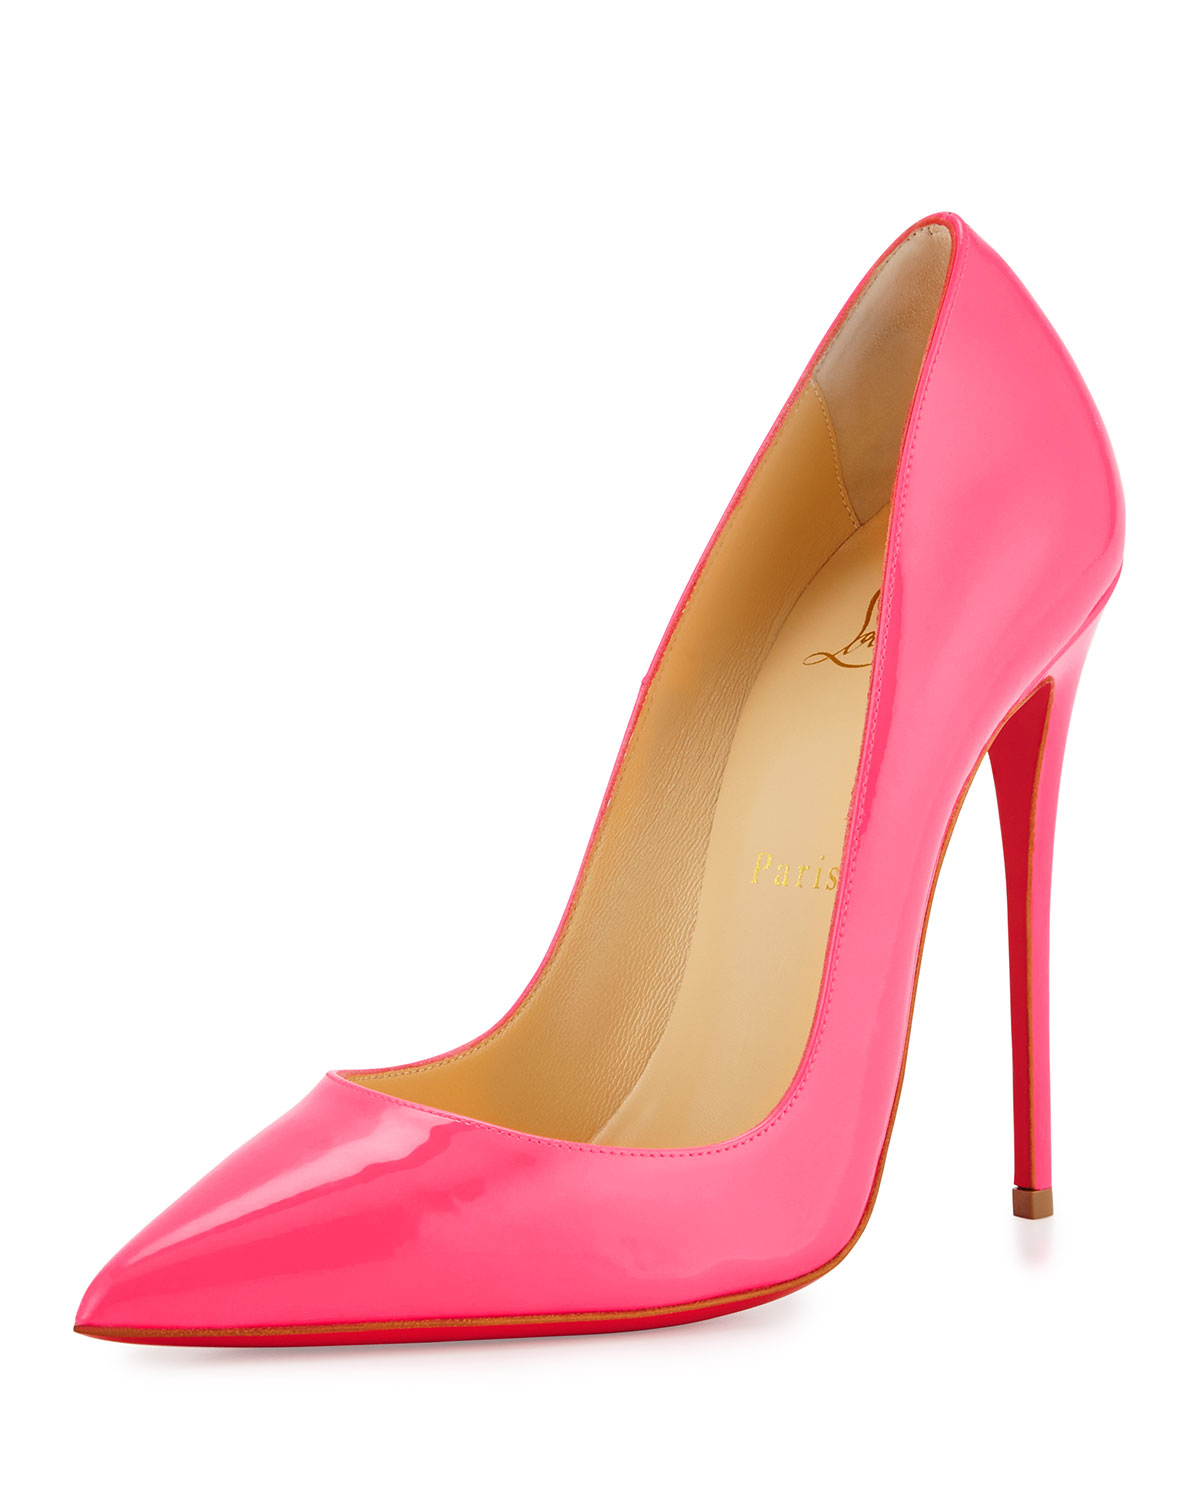 67064041b0f So Kate Patent 120mm Red Sole Pump, Shocking Pink